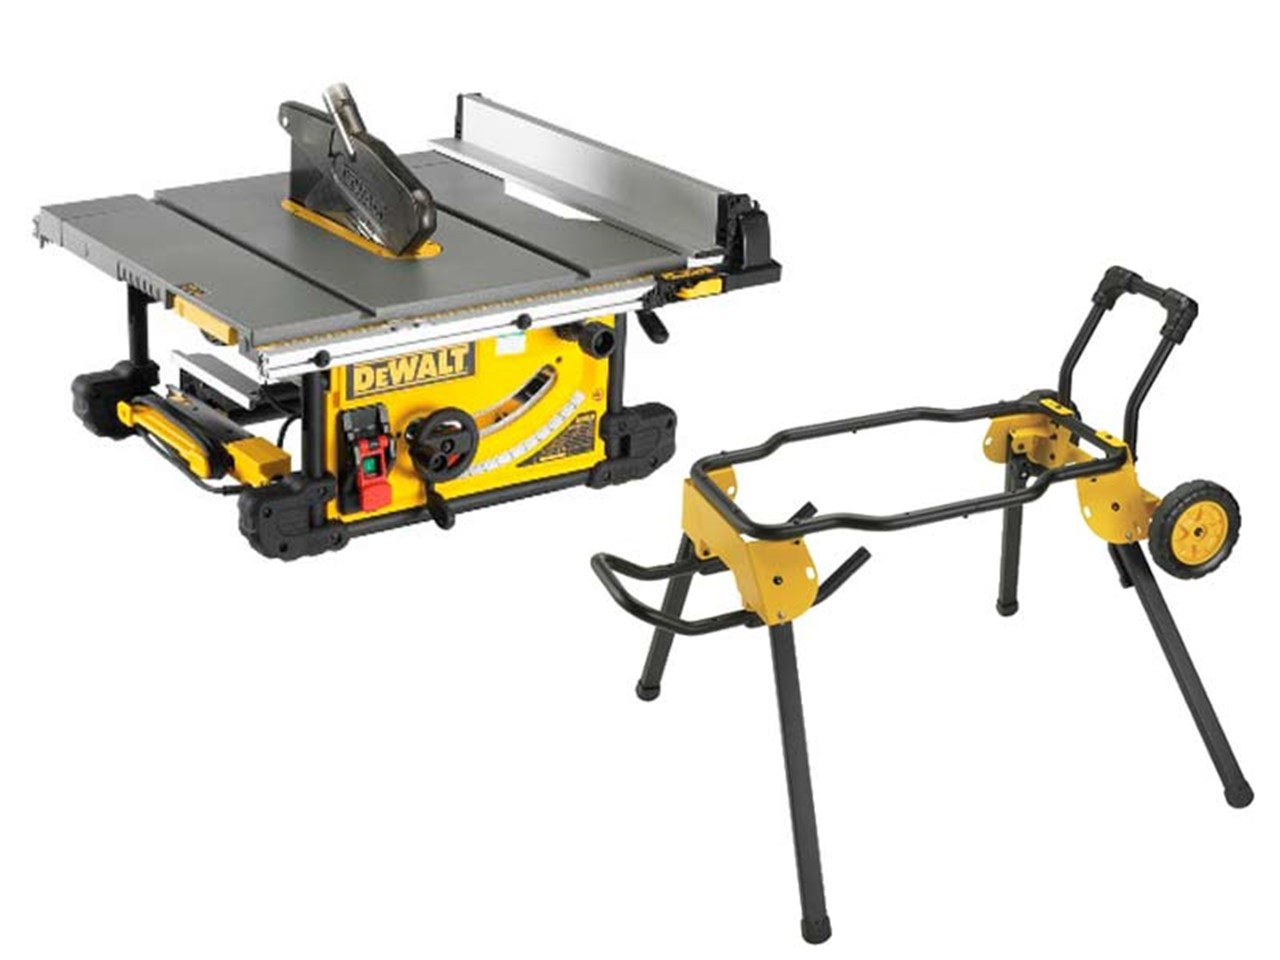 Dewalt dwe7491dwe74911 240v 250mm table saw and rolling leg stand greentooth